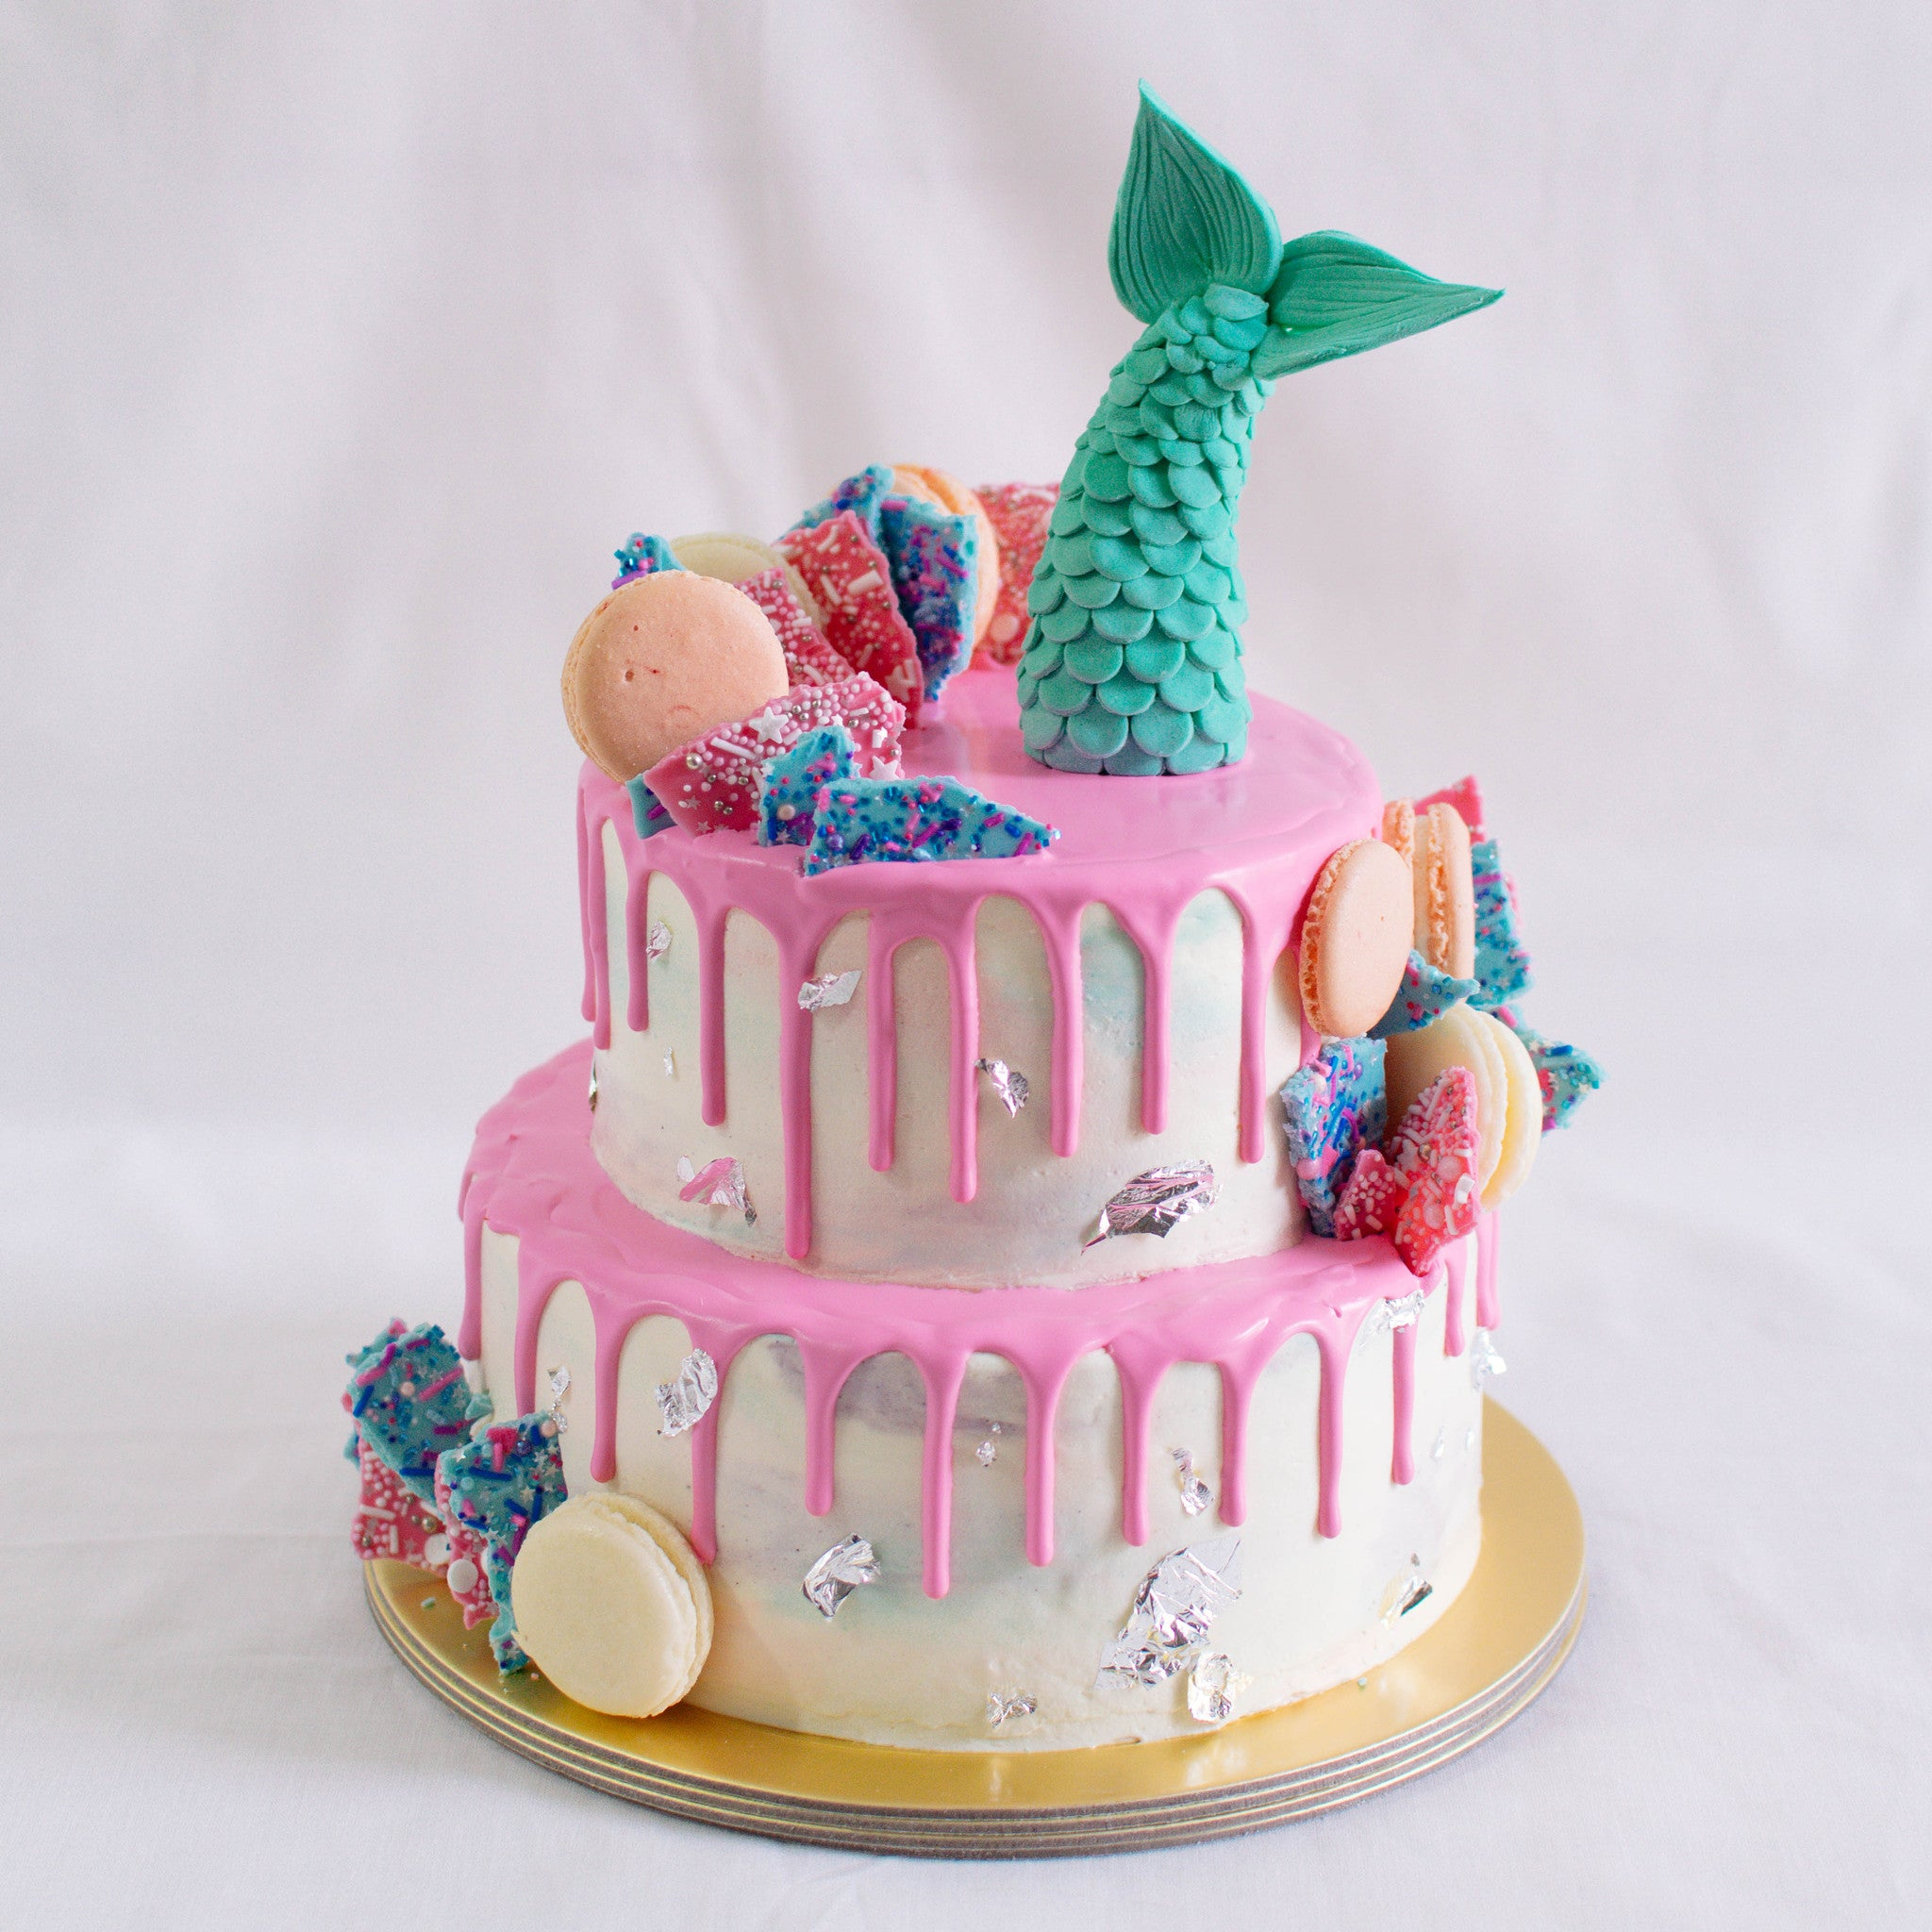 Mermaid Tail Topper - Custom Bakes by Edith Patisserie